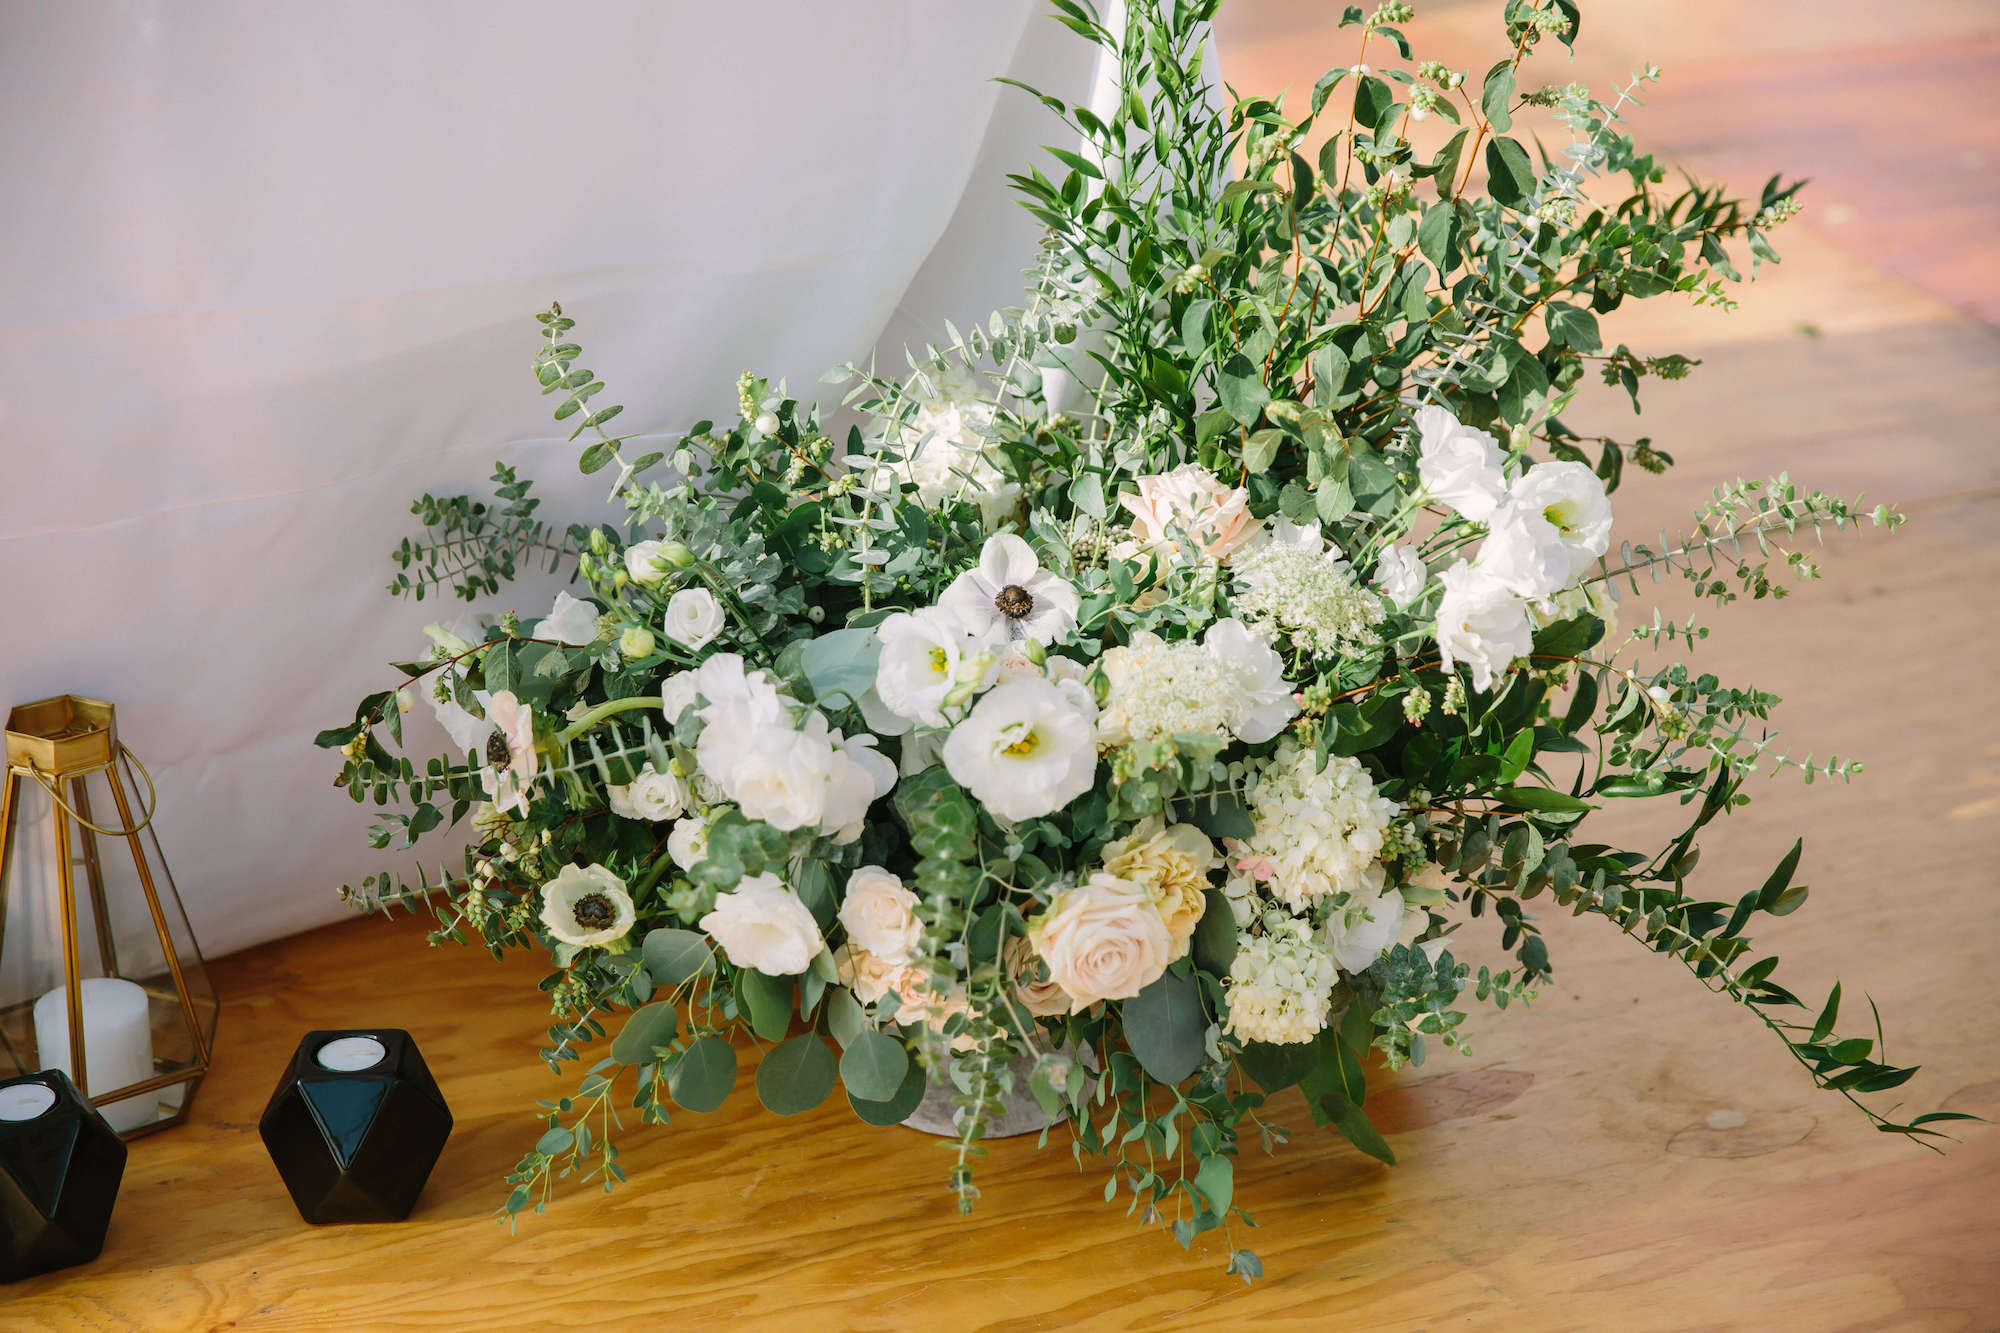 all-white-wedding-flowers-with-greenery.jpg